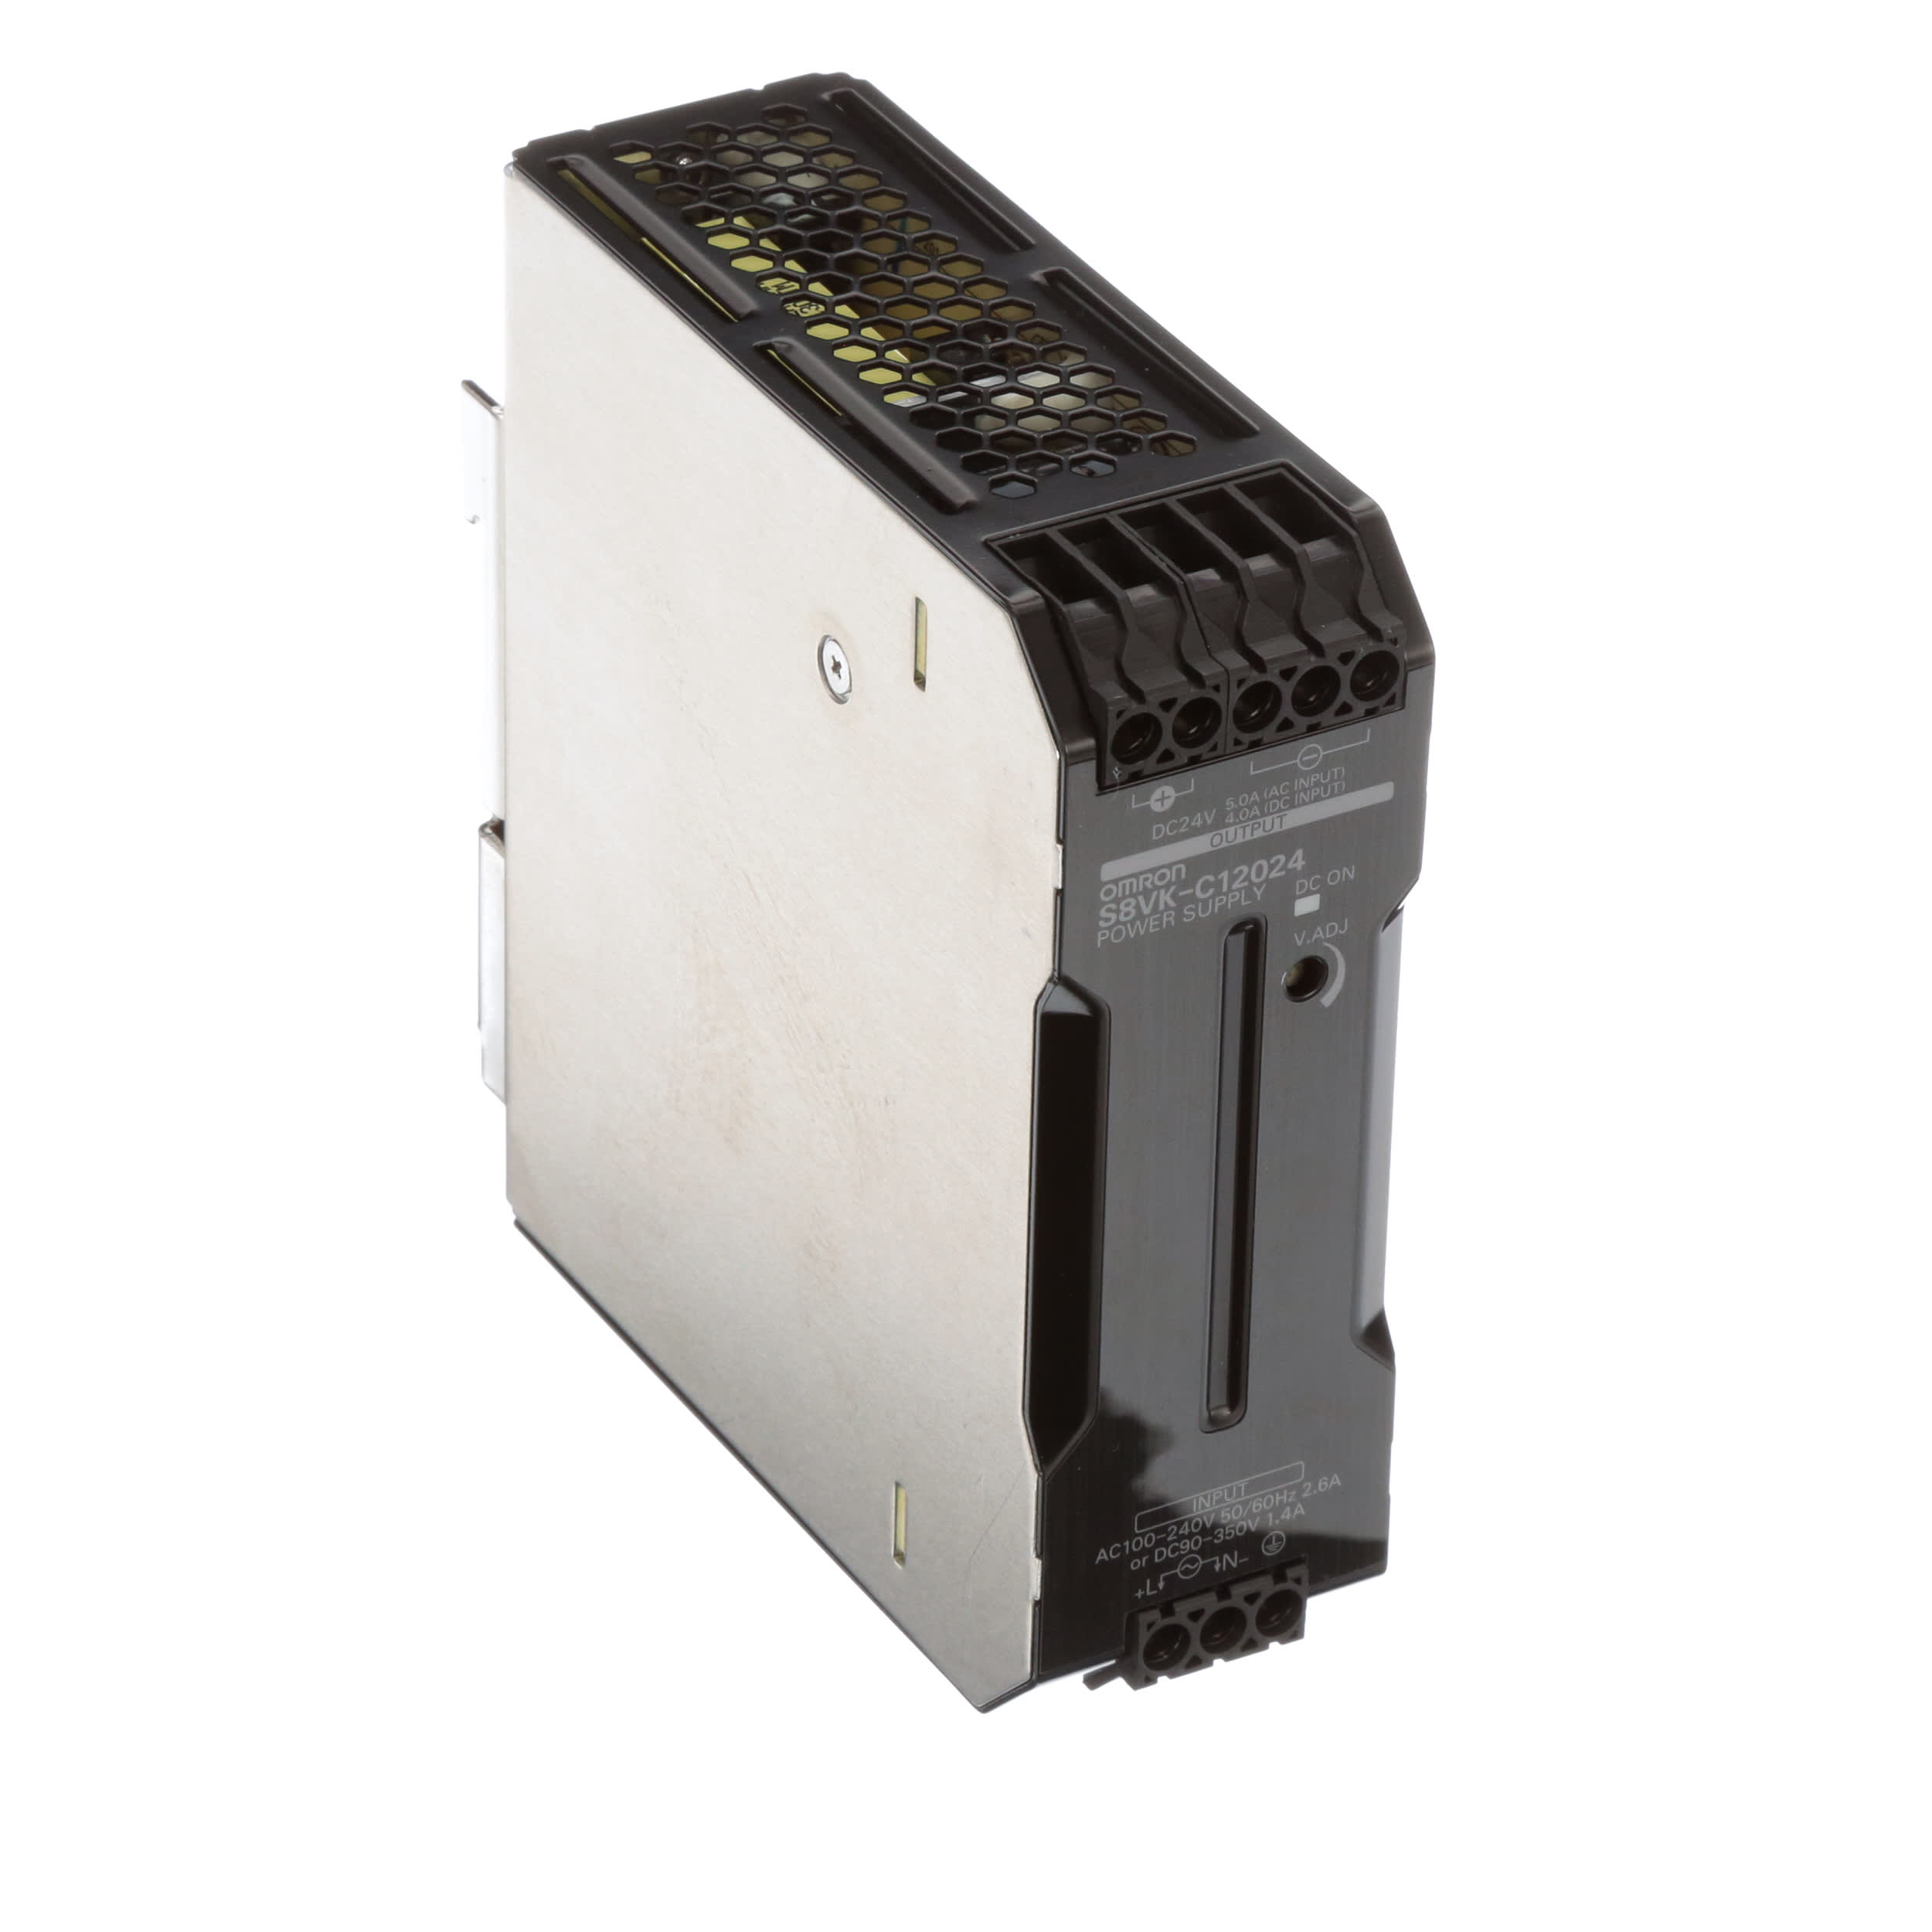 Omron Automation S8vk C12024 Power Supply Switch Mode 120w 24v 5a 20 10awg 14 10awg S8vs Series Allied Electronics Automation